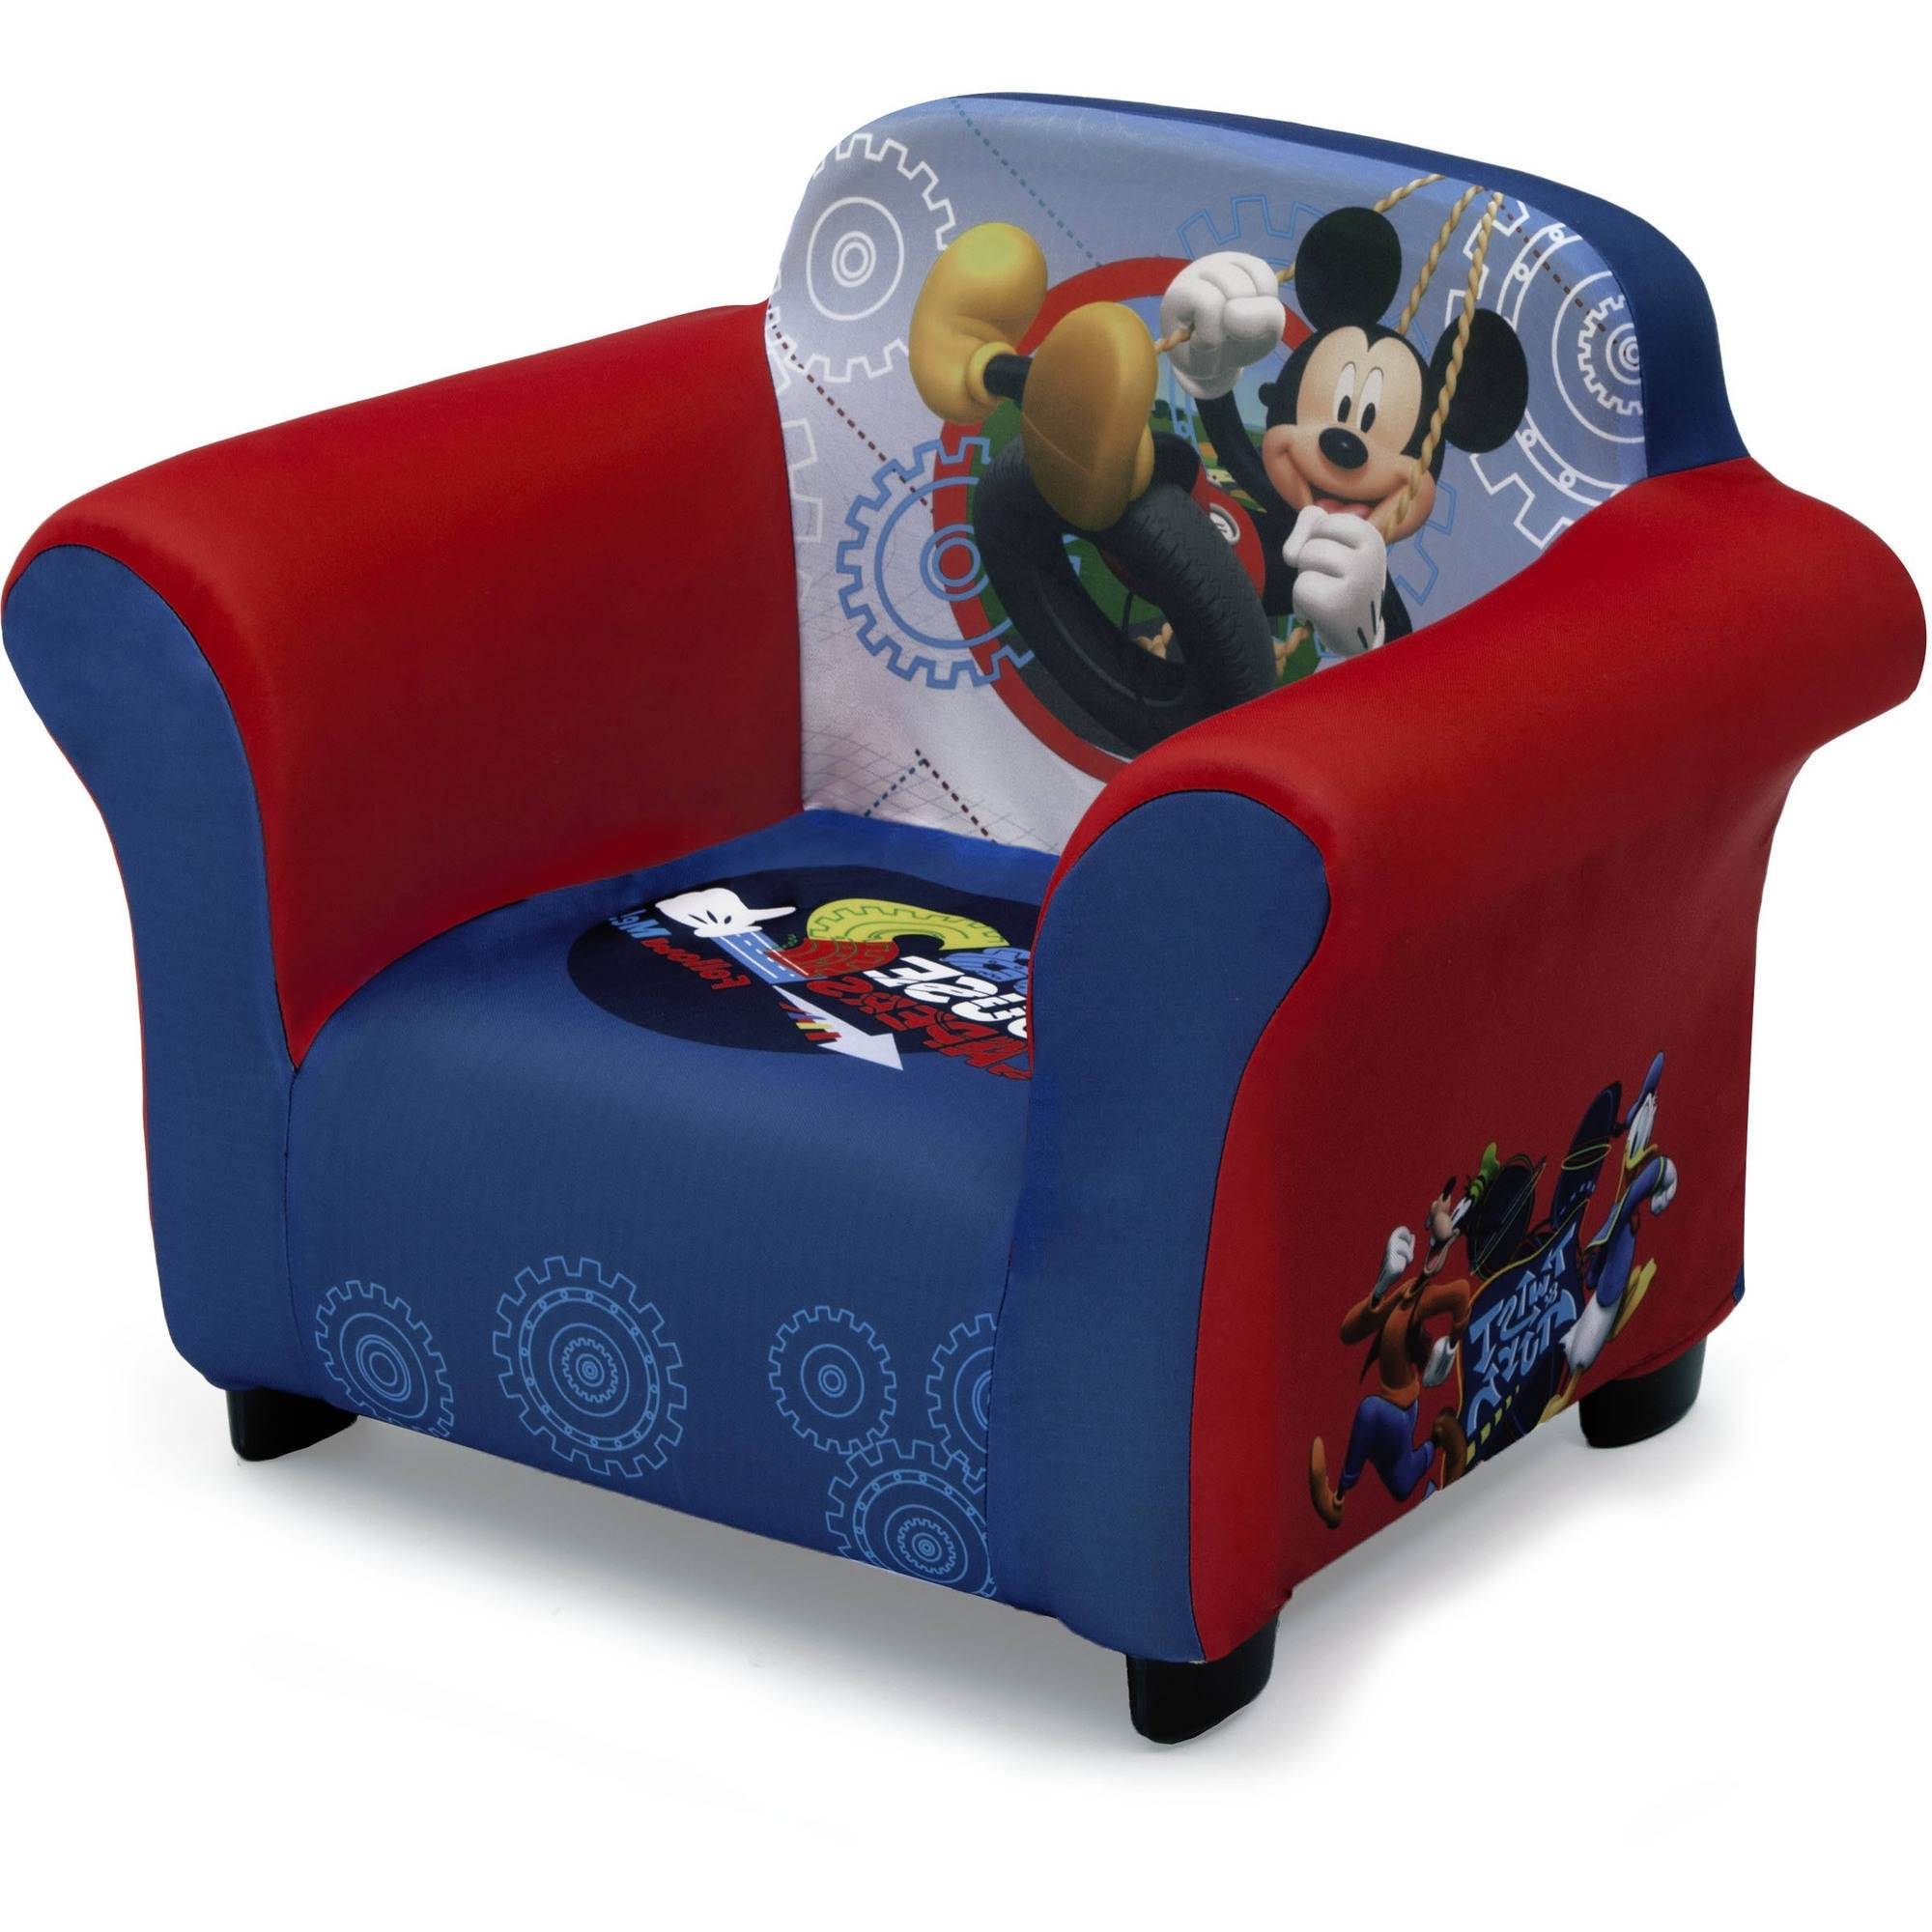 Most Recent Personalized Kids Chairs And Sofas Throughout Uncategorized : Personalized Kids Chairs For Greatest Arm Chair (View 16 of 20)